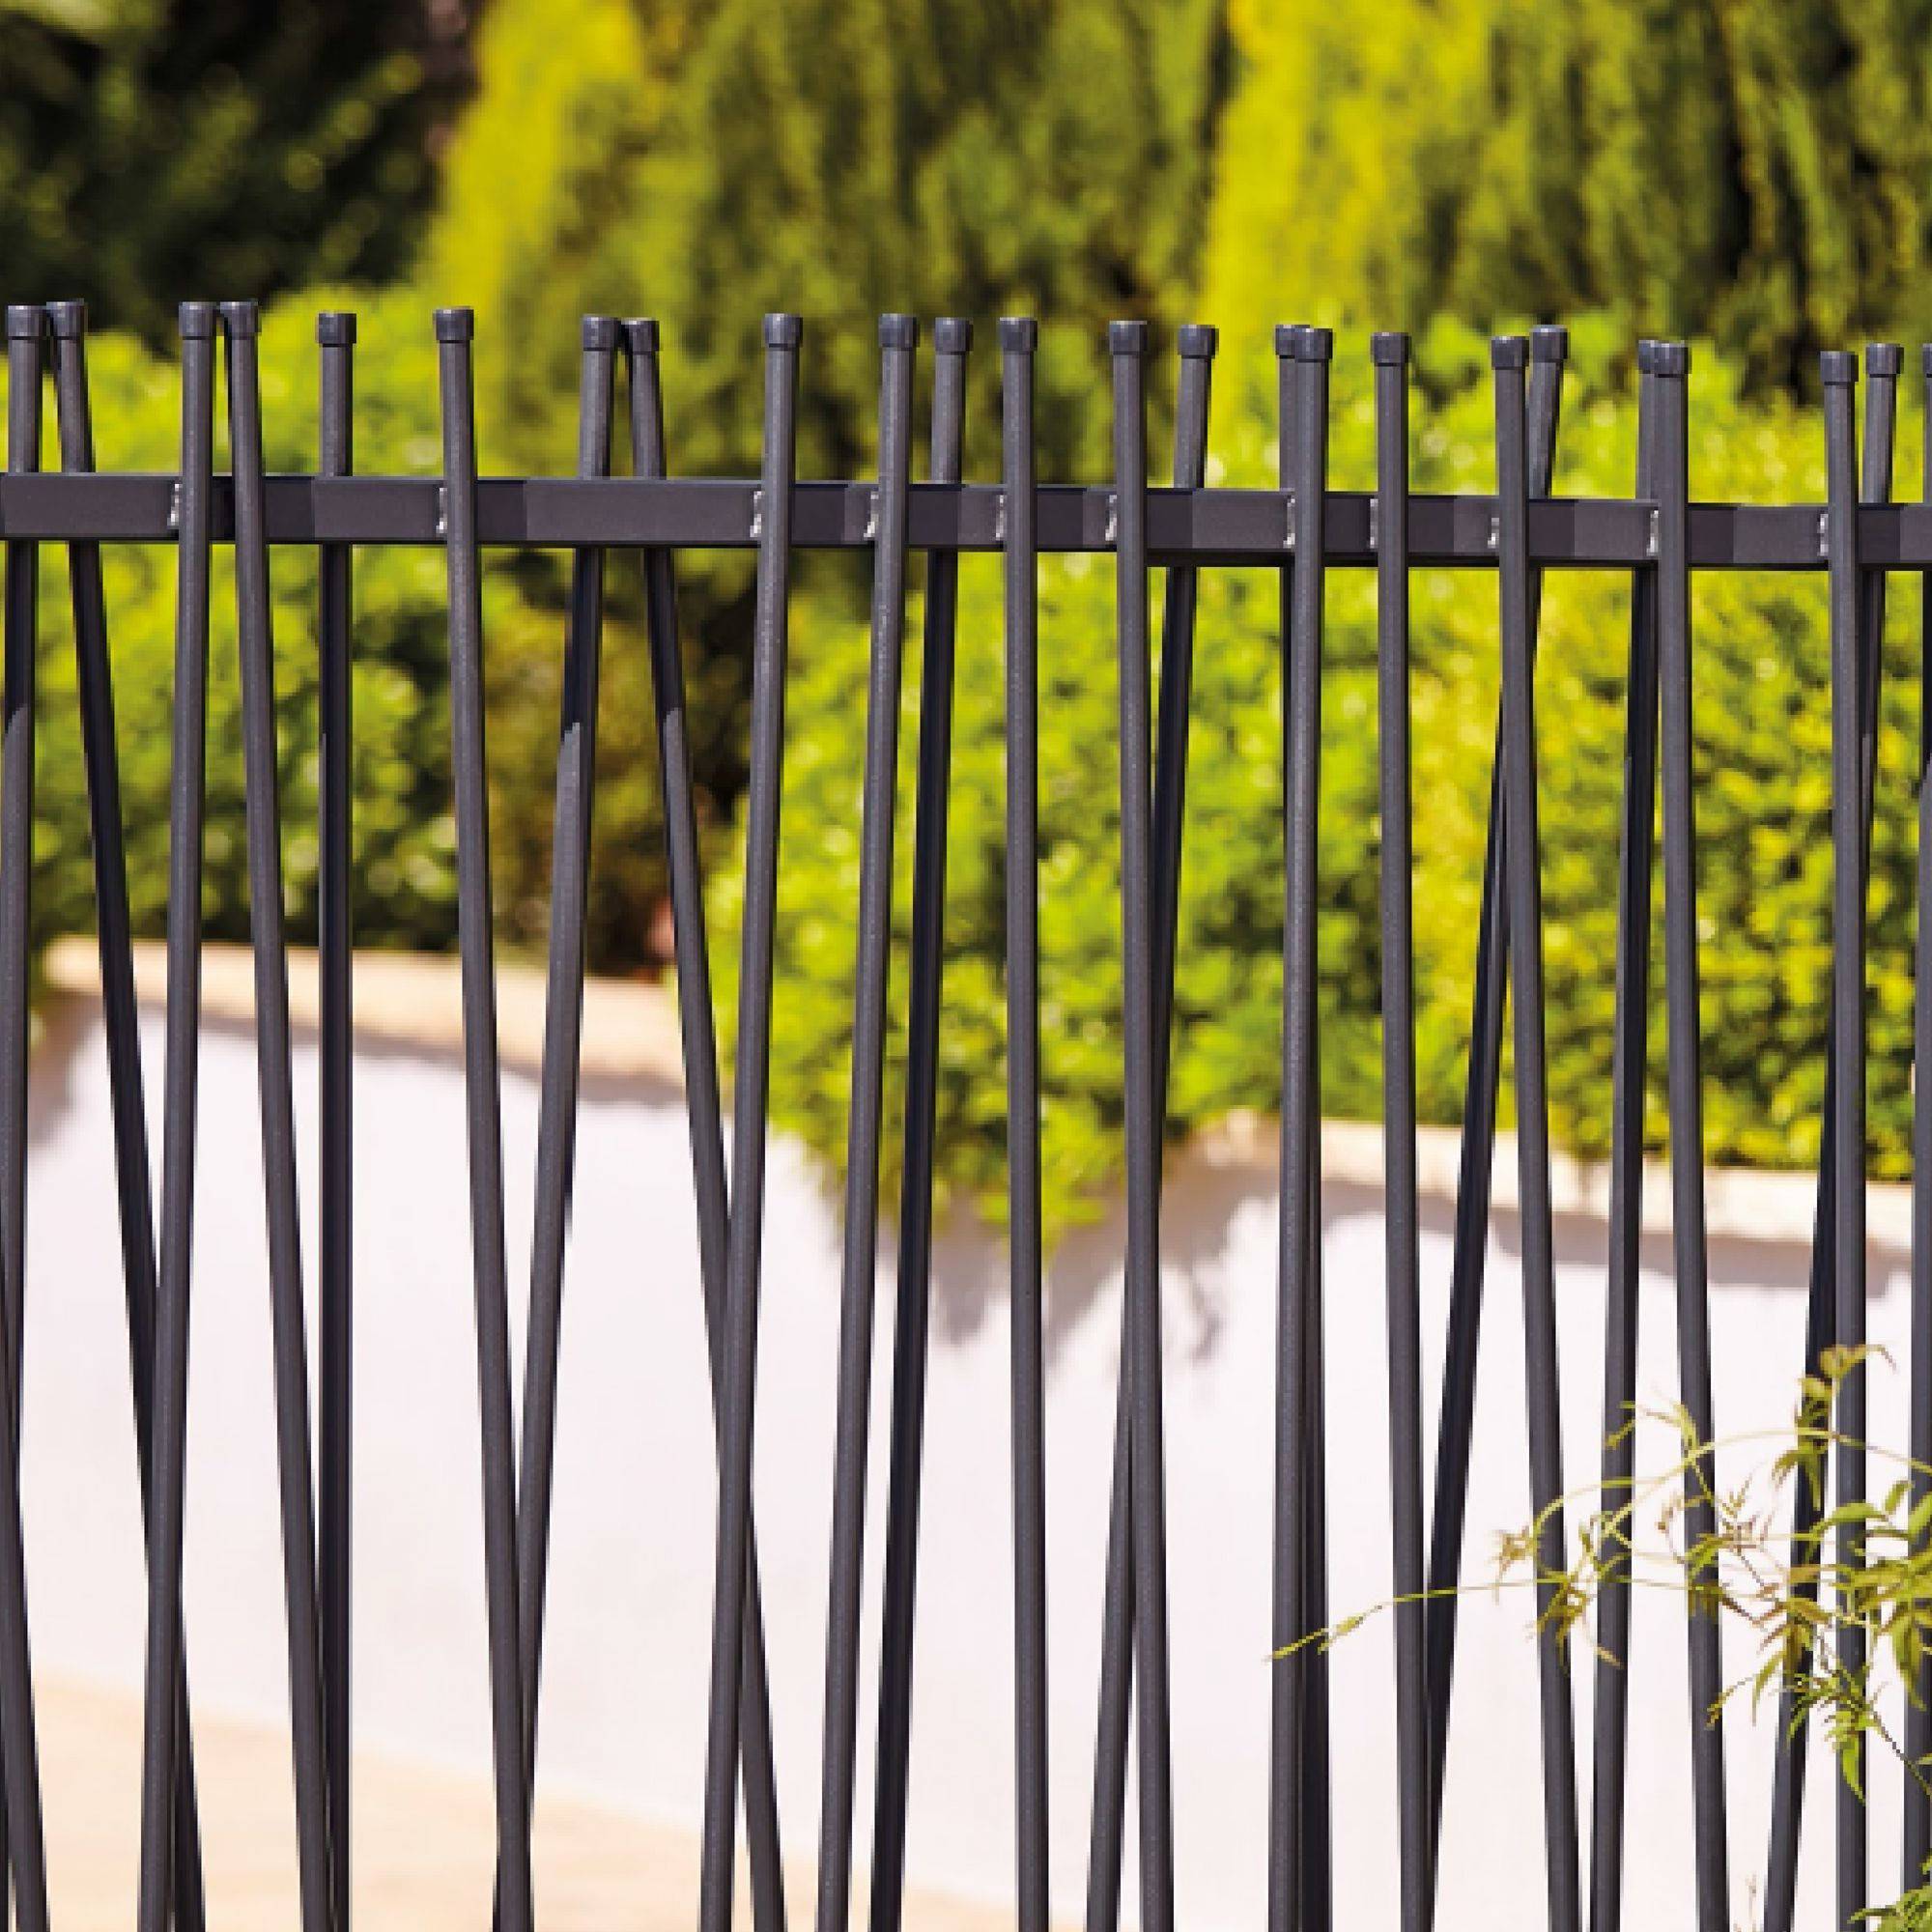 Blooma Powder Coated Steel Tube Fencing W 1 8 M Fence Steel